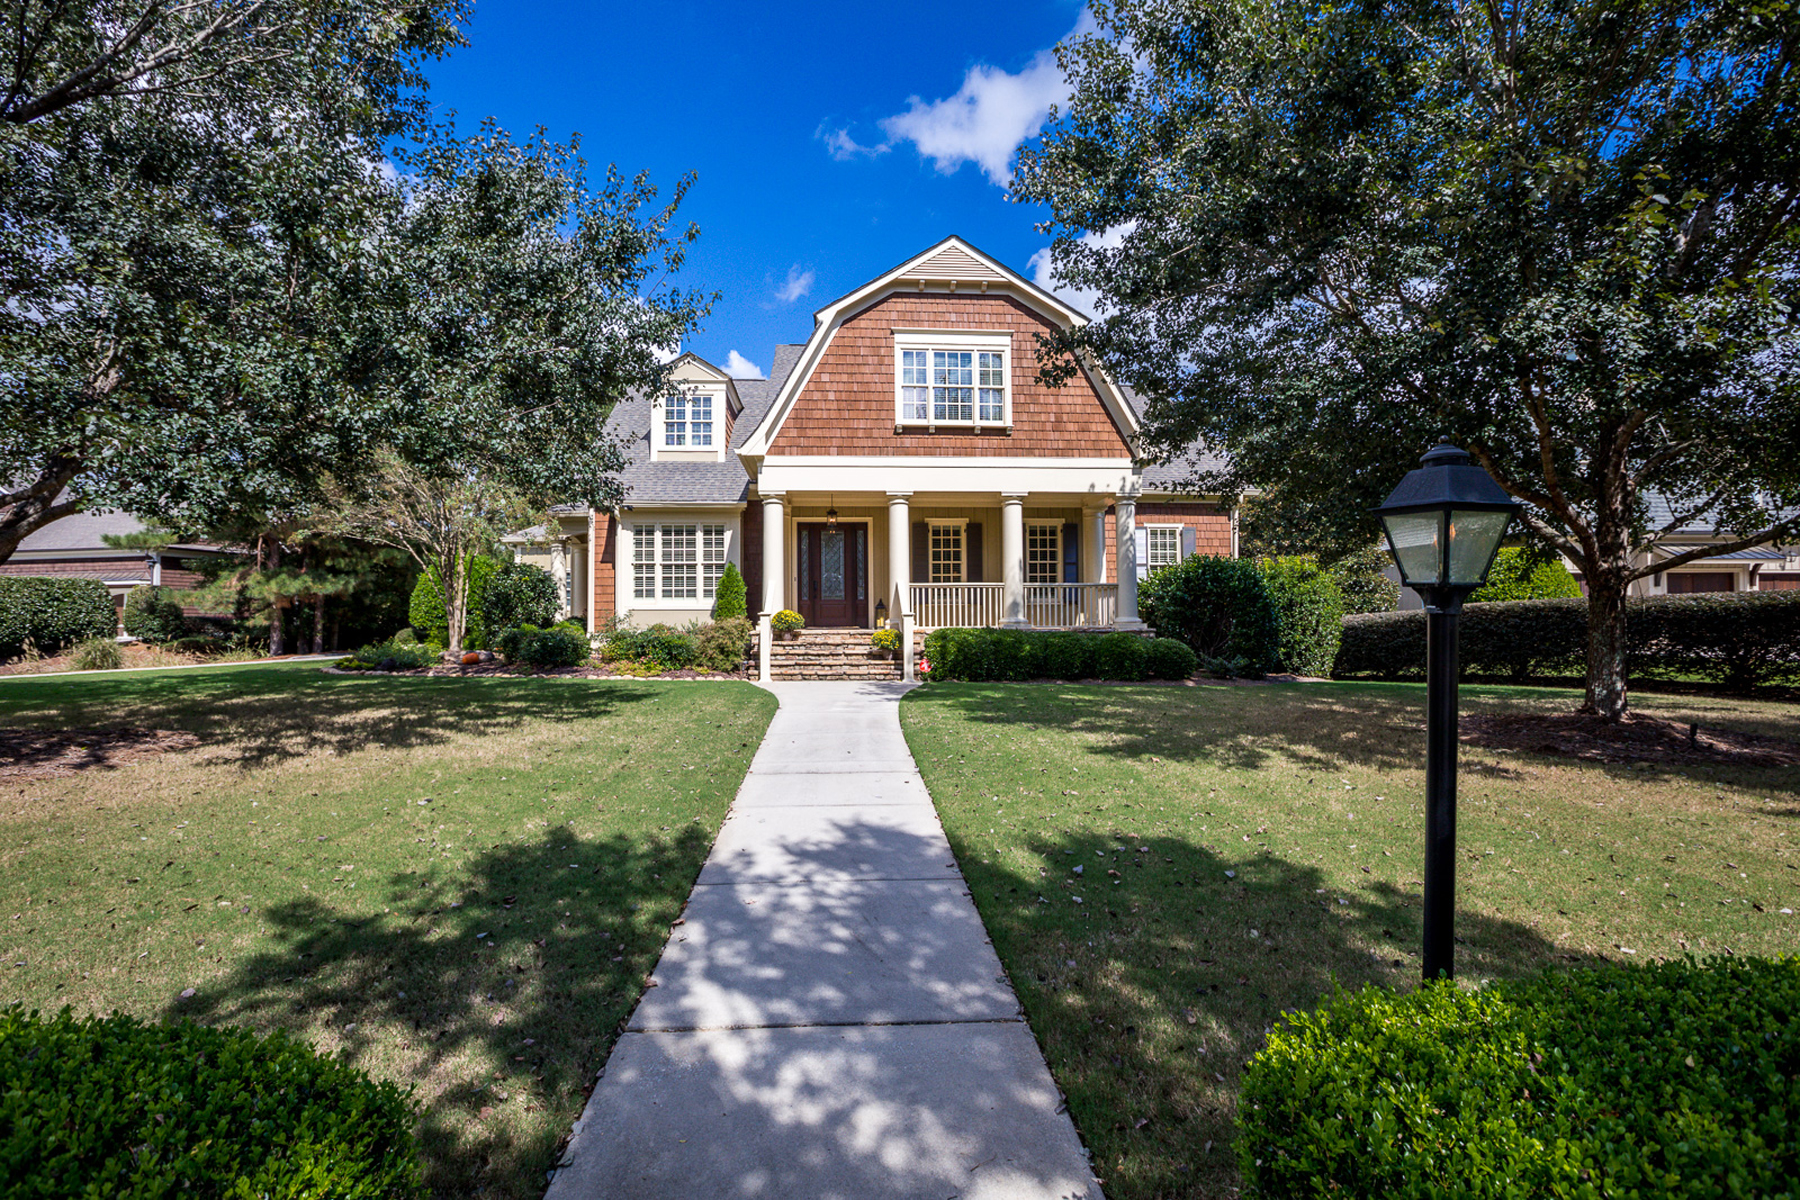 Single Family Home for Sale at Elegant and Relaxed Cedar Shake Style Home in Newhaven with Beautiful Pool/Spa 170 Newhaven Drive Fayetteville, Georgia 30215 United States